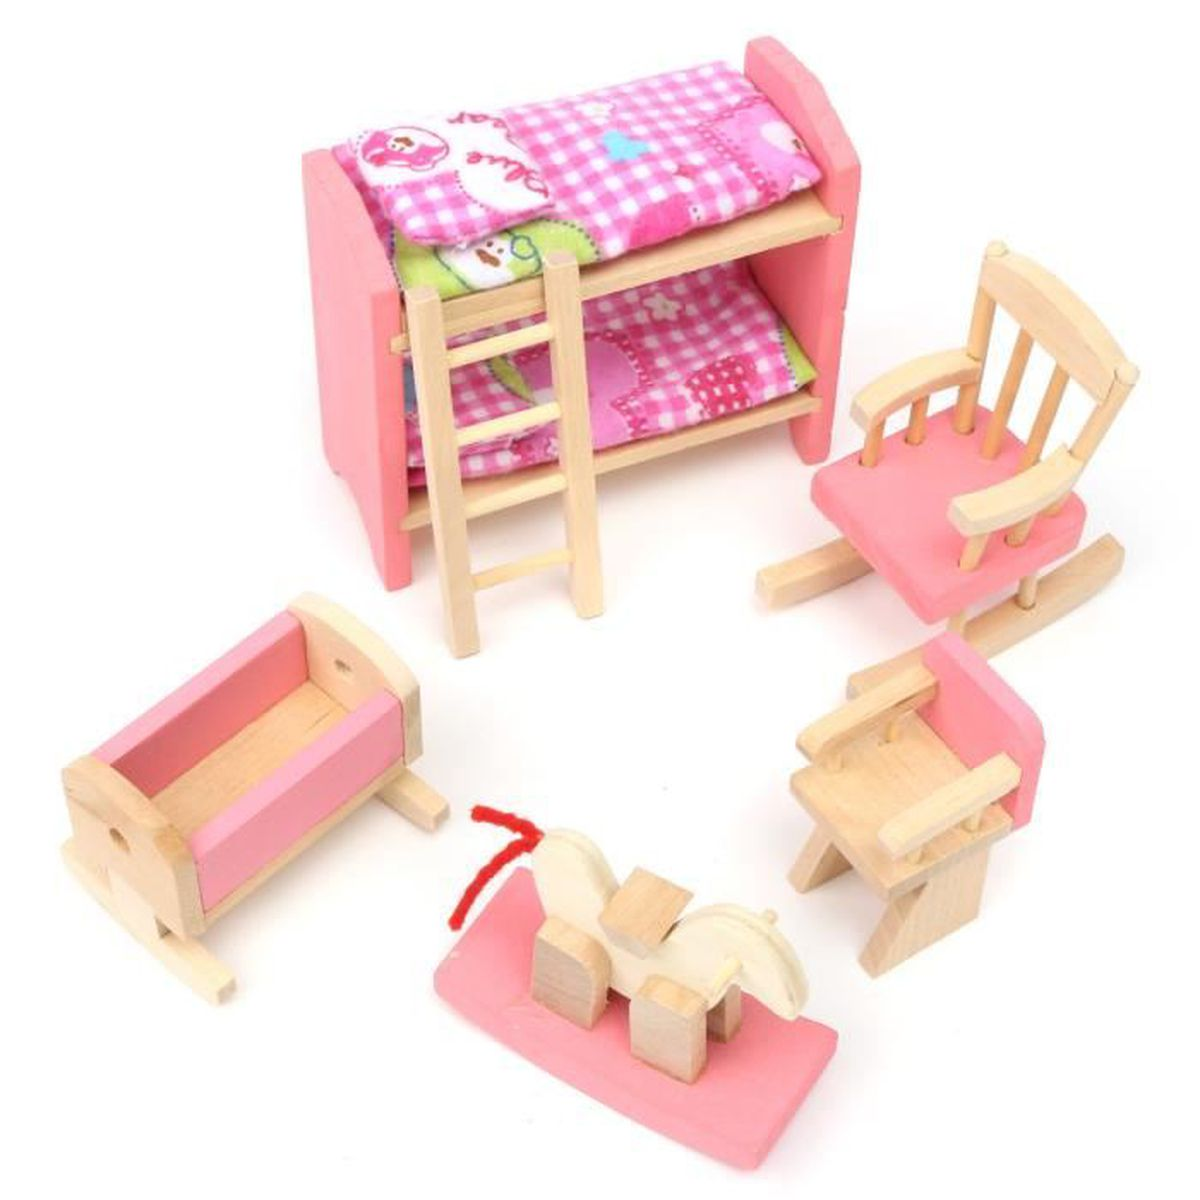 meuble poup e mobilier maison d ette bois jouet enfant barbie espace b b achat vente maison. Black Bedroom Furniture Sets. Home Design Ideas